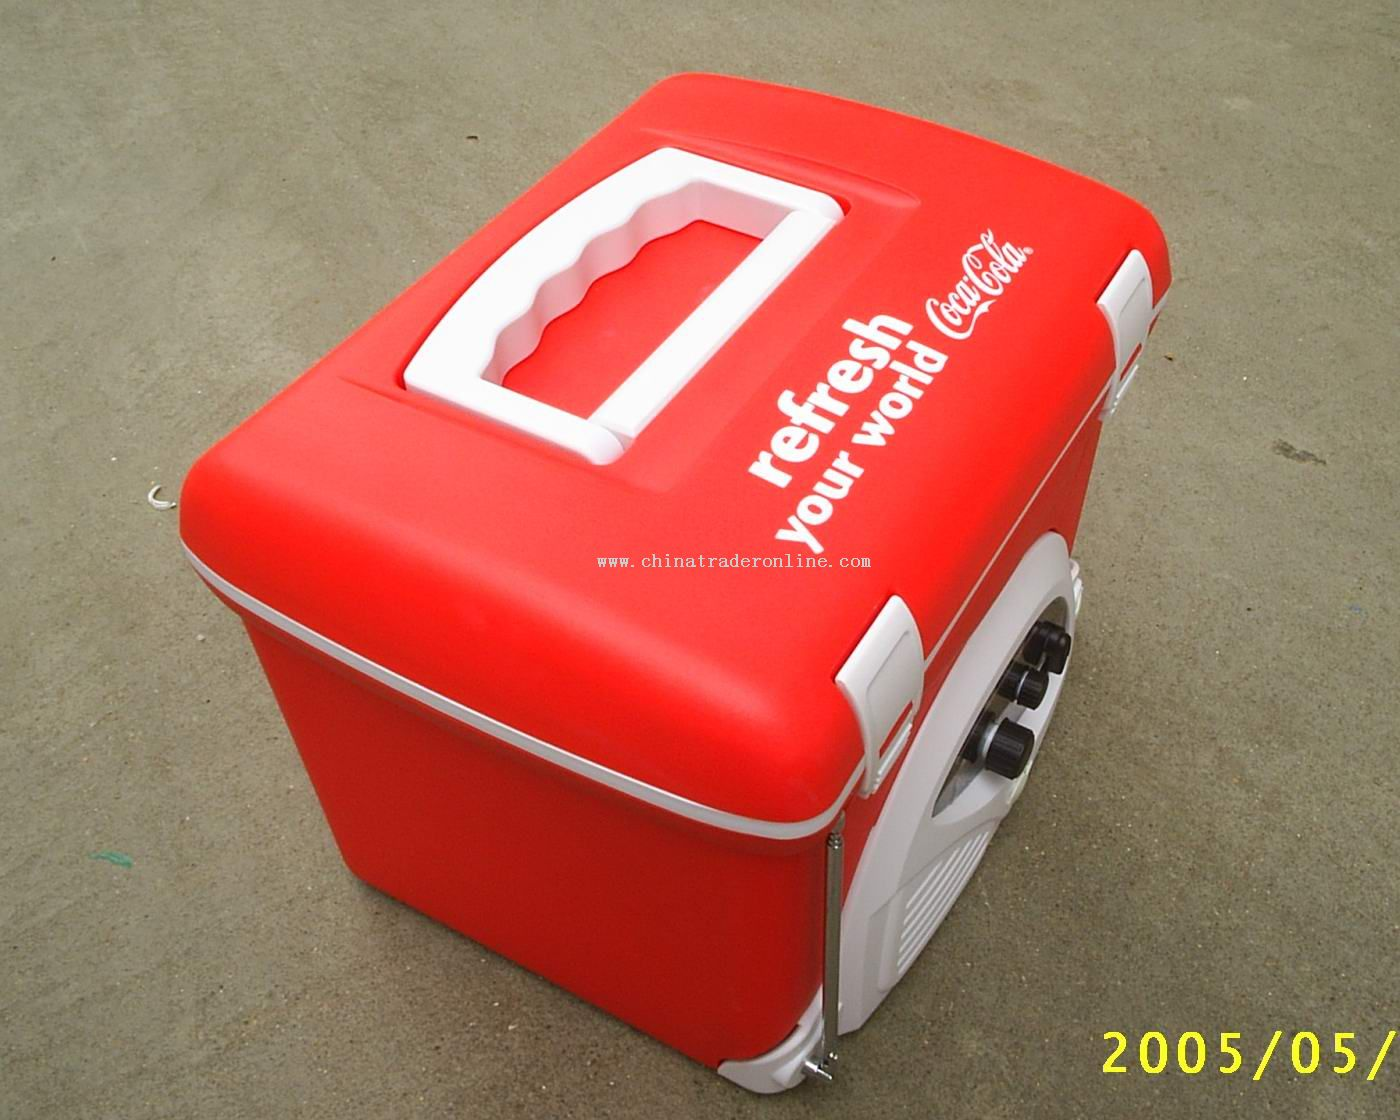 Red Cooler box radio